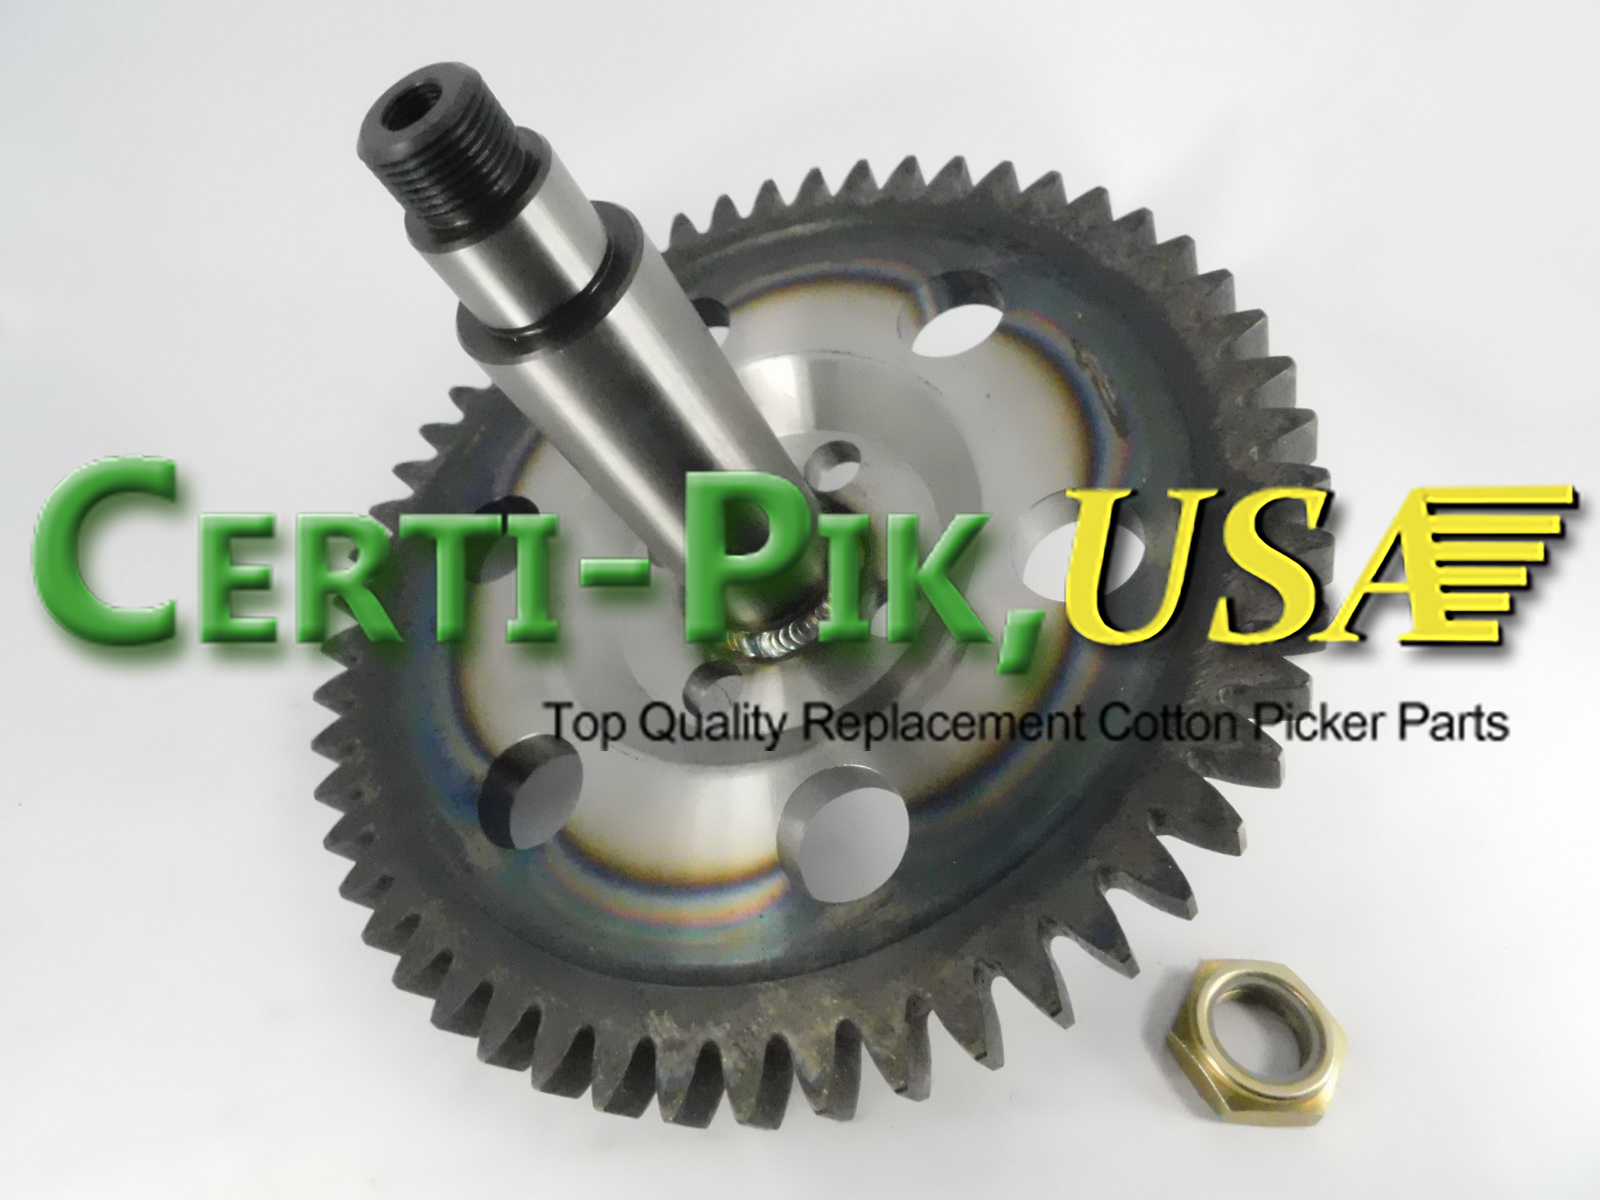 Picking Unit System: John Deere Idler Gear Assembly N274017 (74017) for Sale